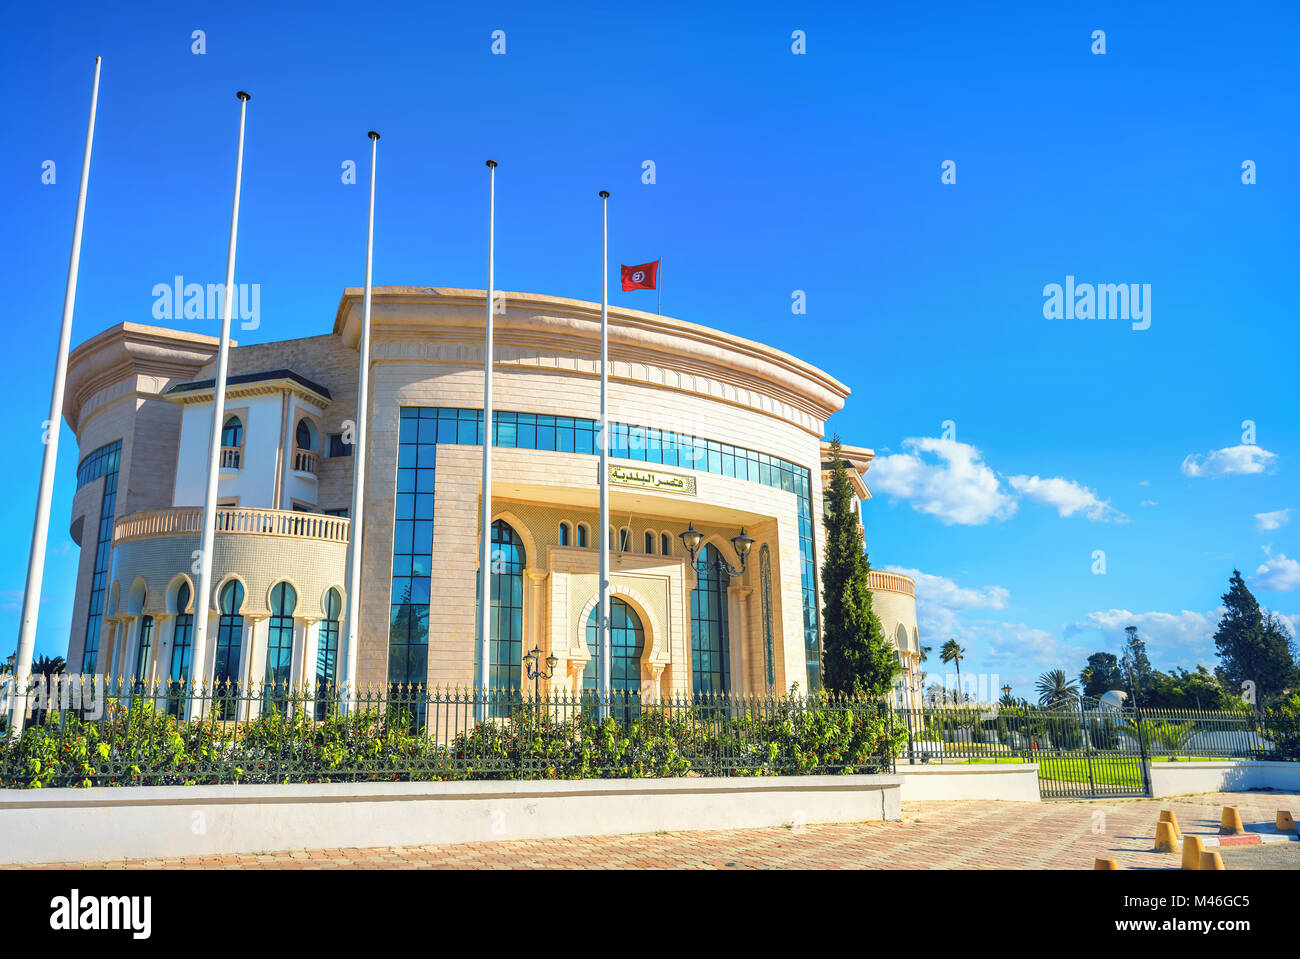 Modern palace of marriage, wedding ceremony and registration new  born child. Nabeul, Tunisia, North Africa - Stock Image